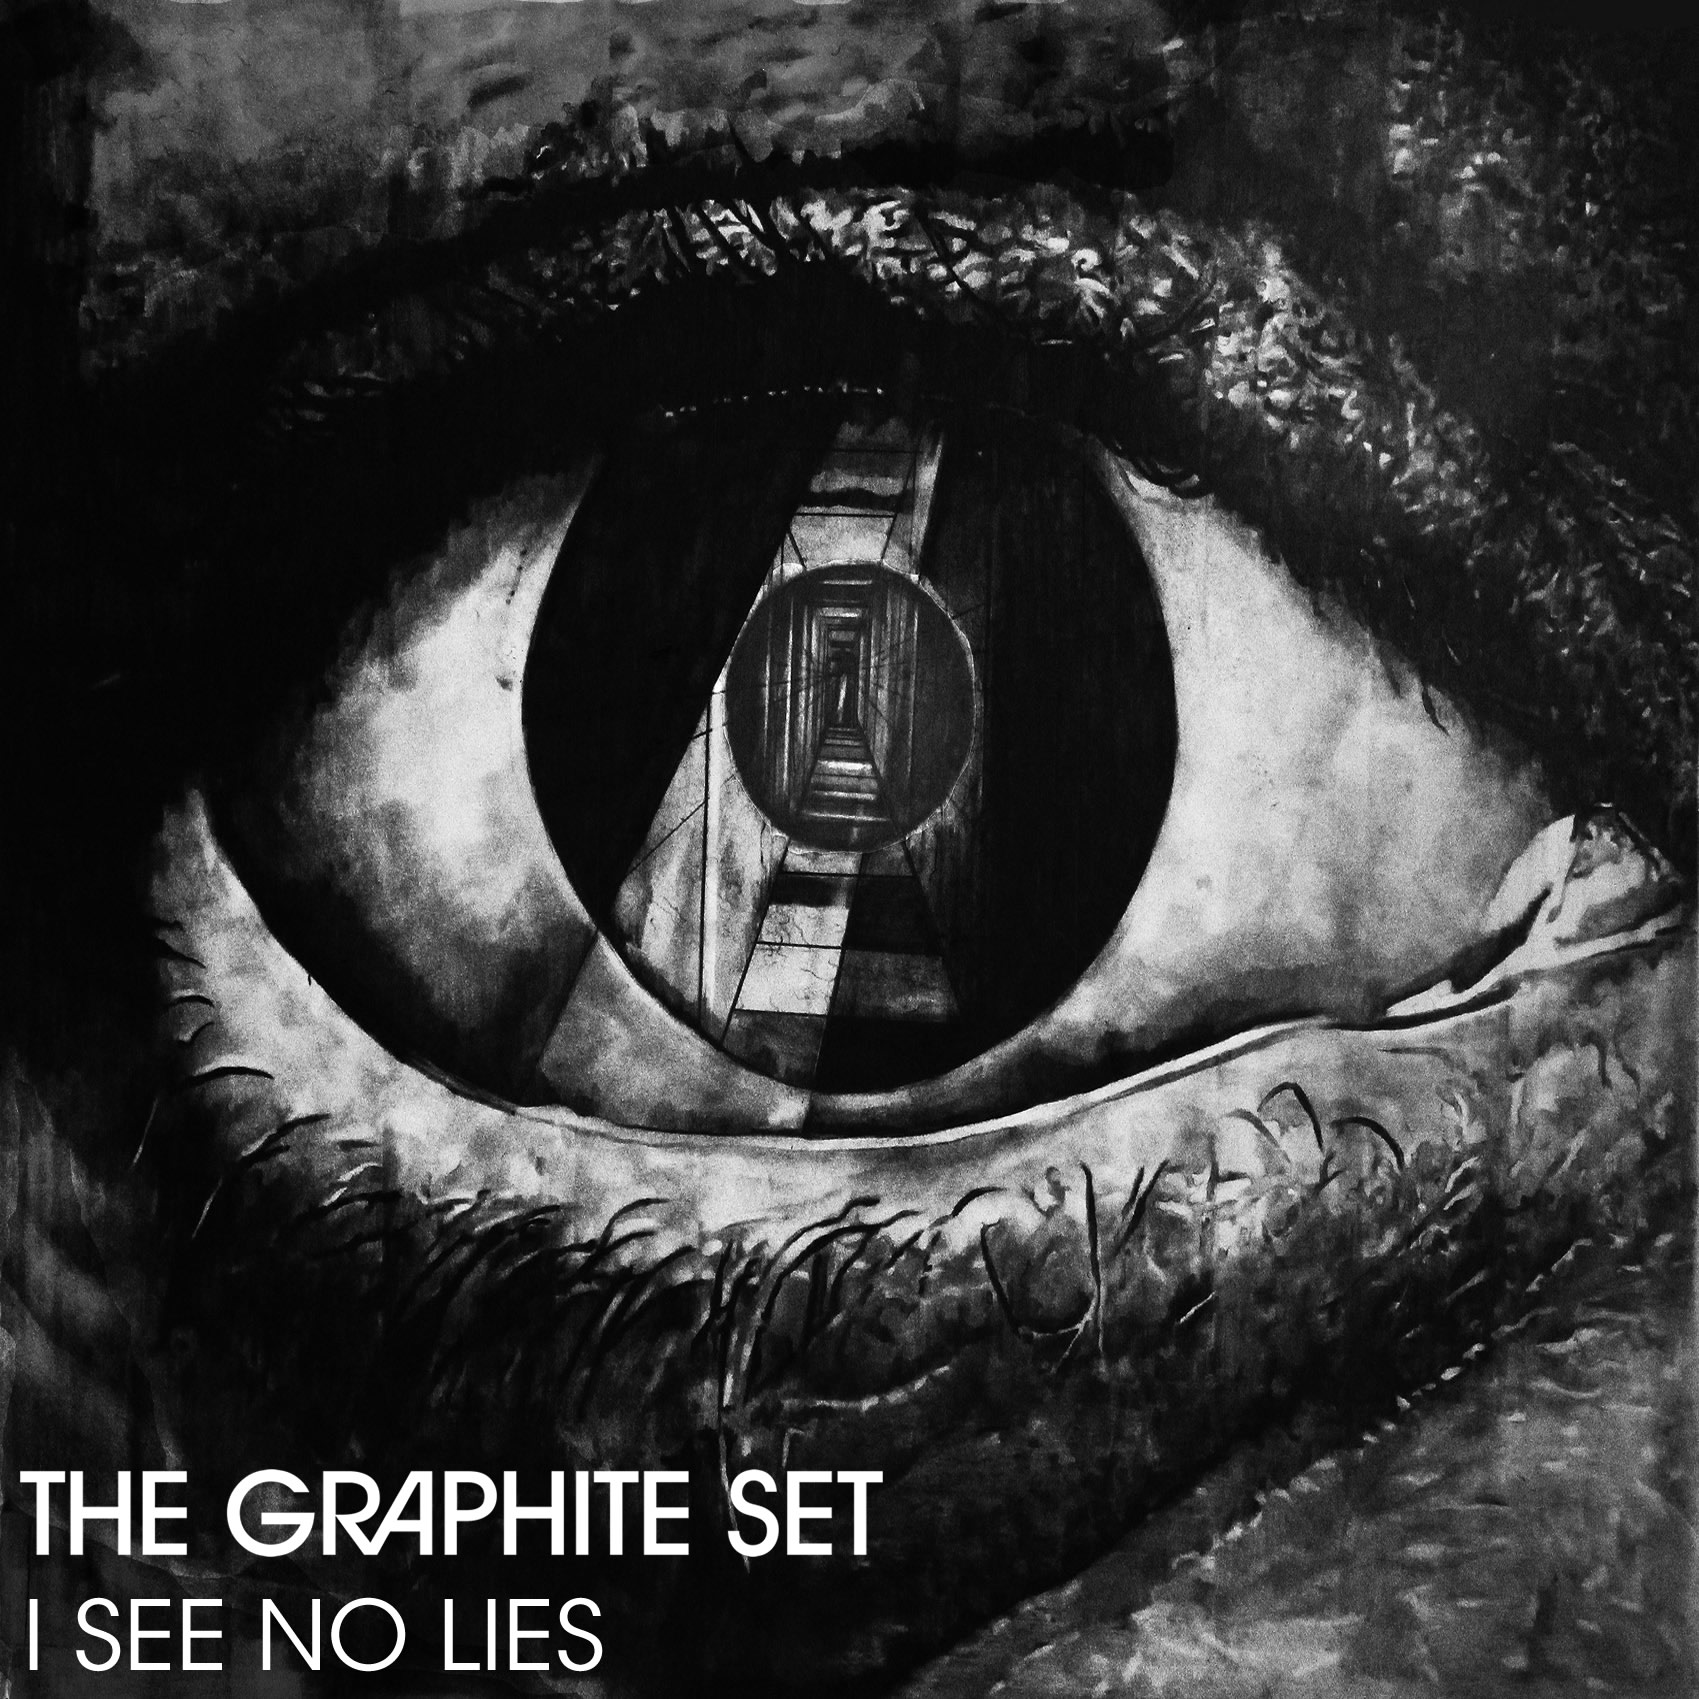 The Graphite Set - I See No Lies